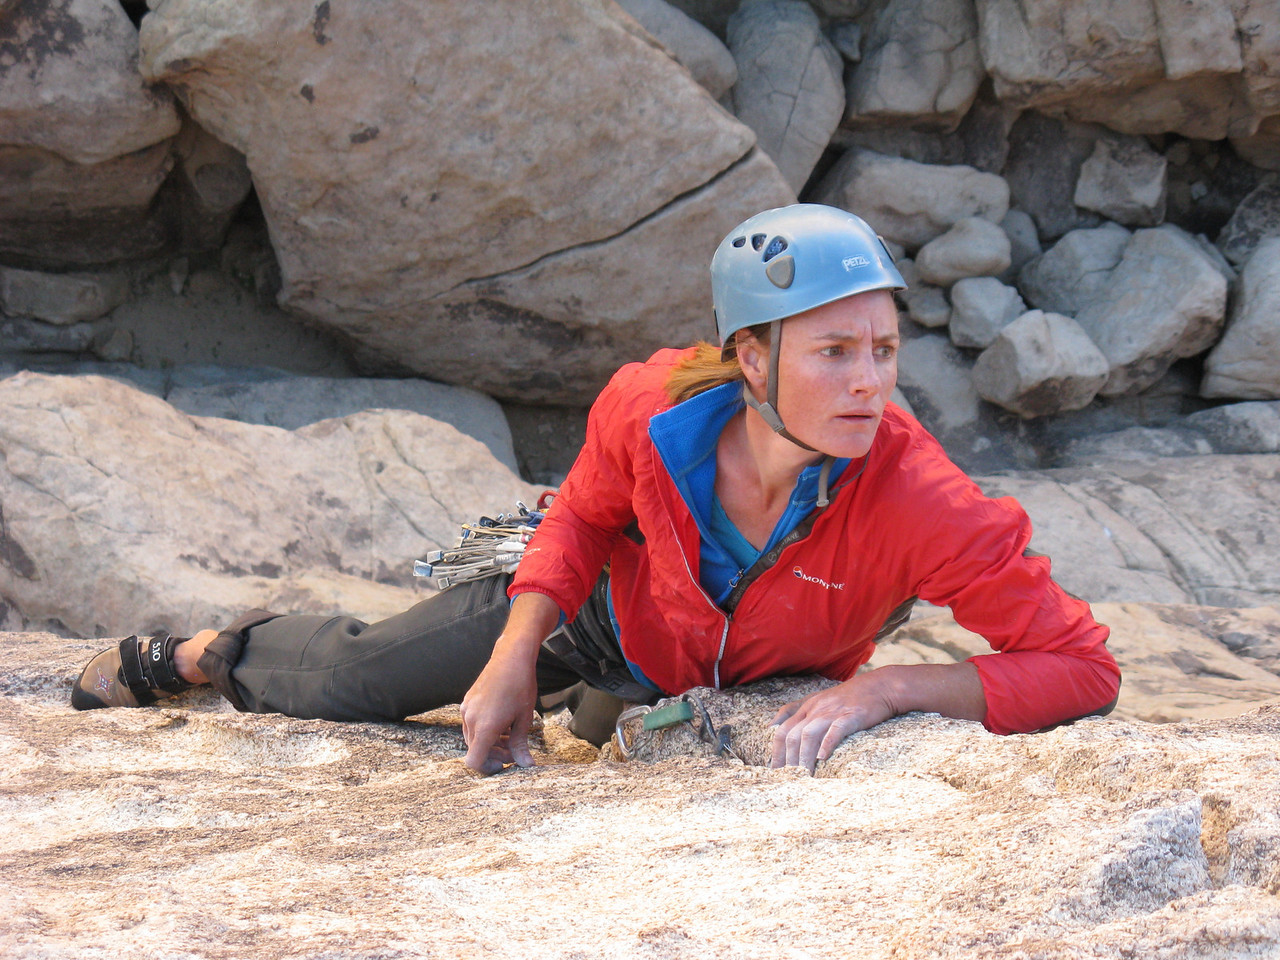 1/11/13 This was perhaps the best single pitch 5.9 of the trip and very tough for the grade, especially mentally. Committing climbing with only 3 bolts and long runouts to trad gear. Brilliant moves and the best quality rock Joshua Tree has.